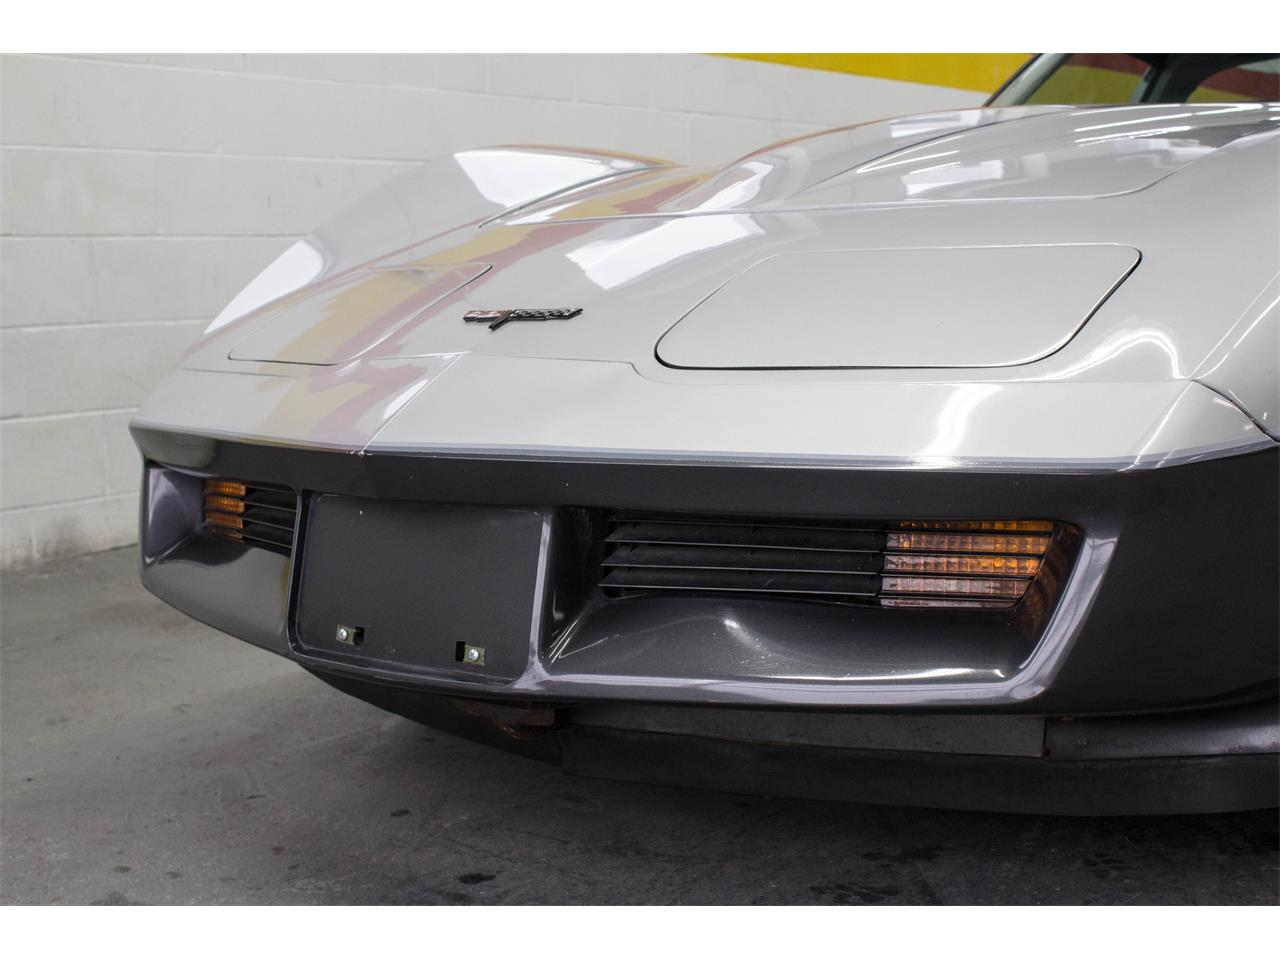 Large Picture of '81 Corvette located in Montreal Quebec - $26,900.00 Offered by John Scotti Classic Cars - KKXW